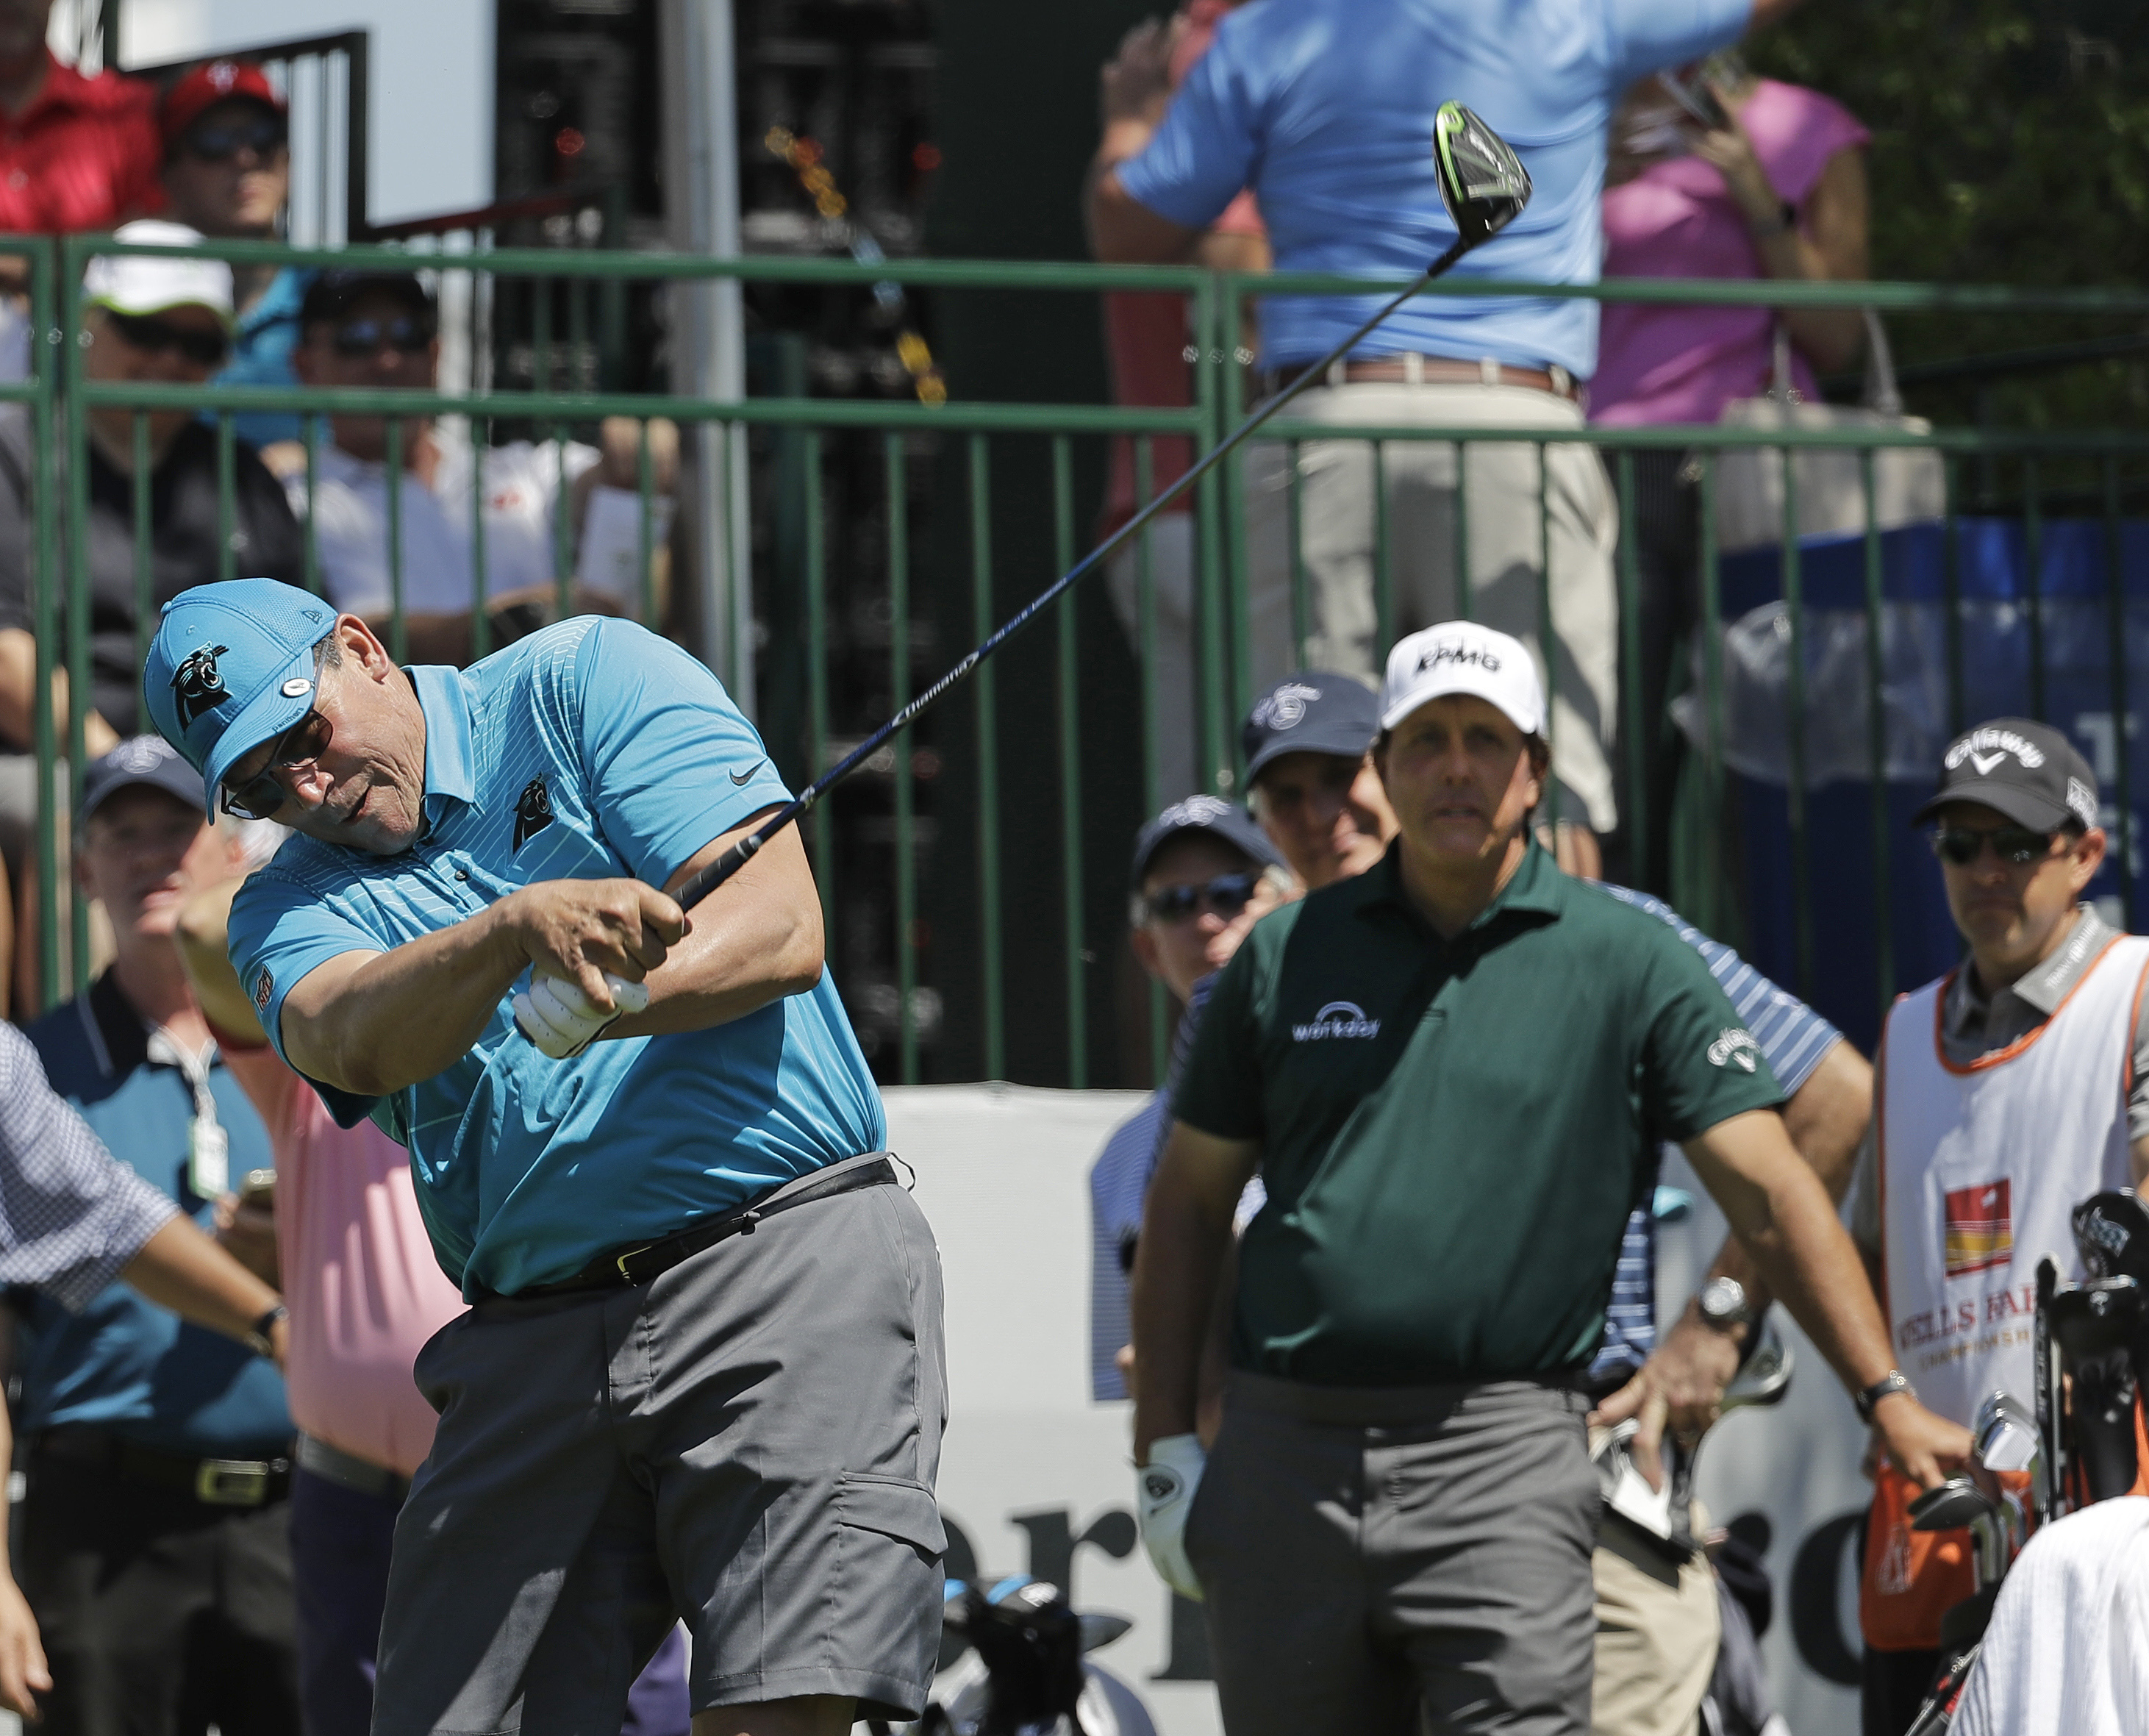 <div class='meta'><div class='origin-logo' data-origin='AP'></div><span class='caption-text' data-credit='Chuck Burton'>Carolina Panthers head coach Ron Rivera, left, hits his tee shot as Phil Mickelson, right, watches on the 10th hole.</span></div>